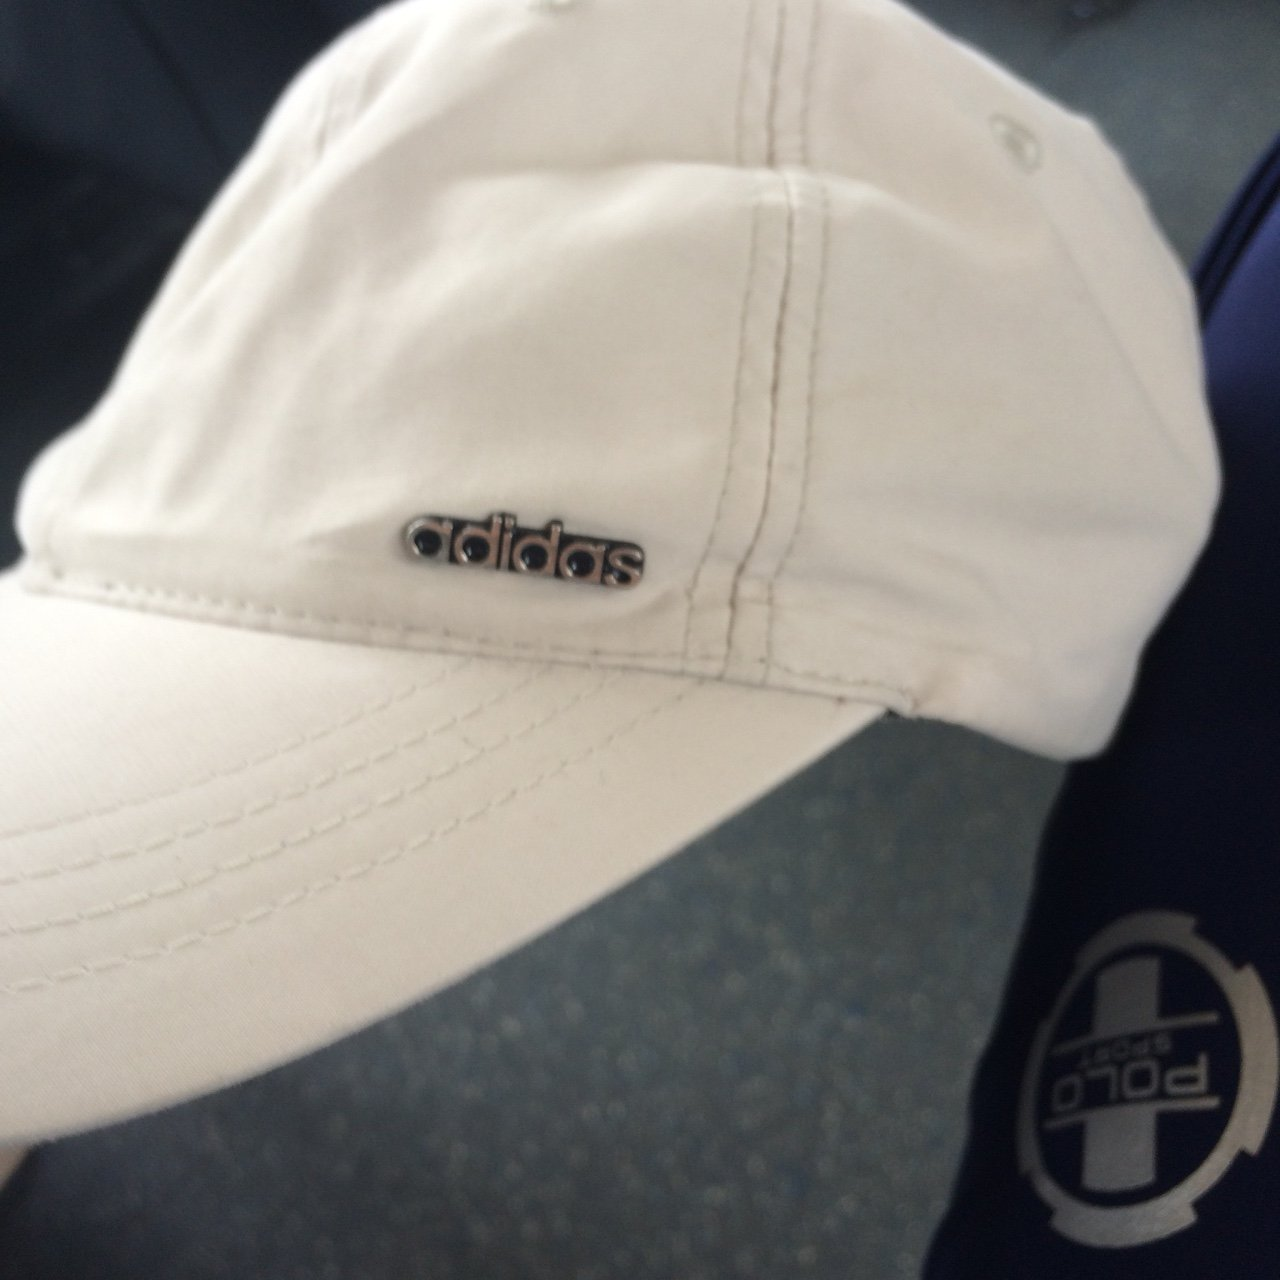 Fire likkle cream adidas cap wiv da metal logo. Light and - Depop 98ba6e13dc1